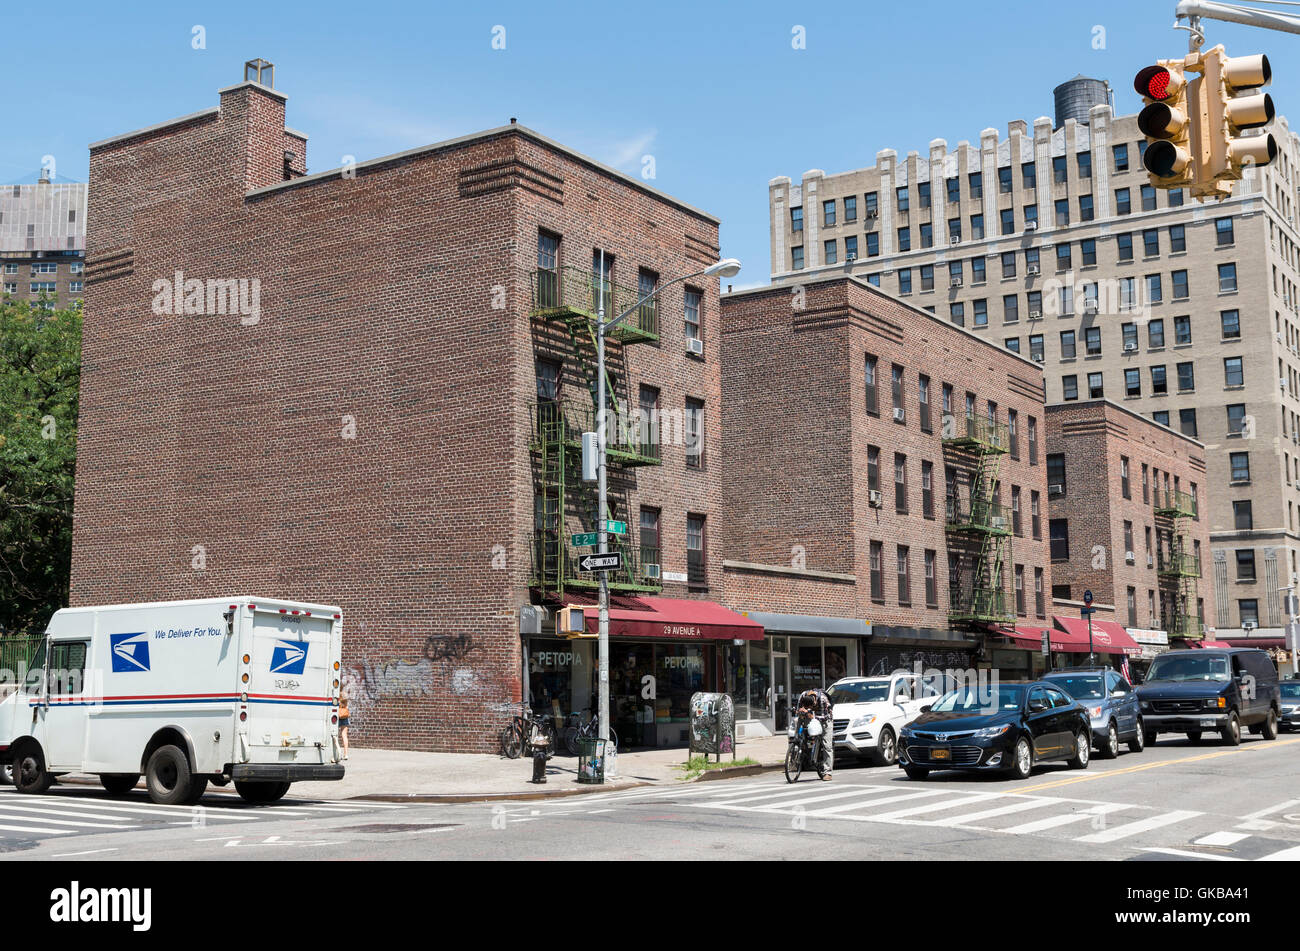 Landmarked First Houses on Avenue A , New York, were the first public housing project in the USA - Stock Image